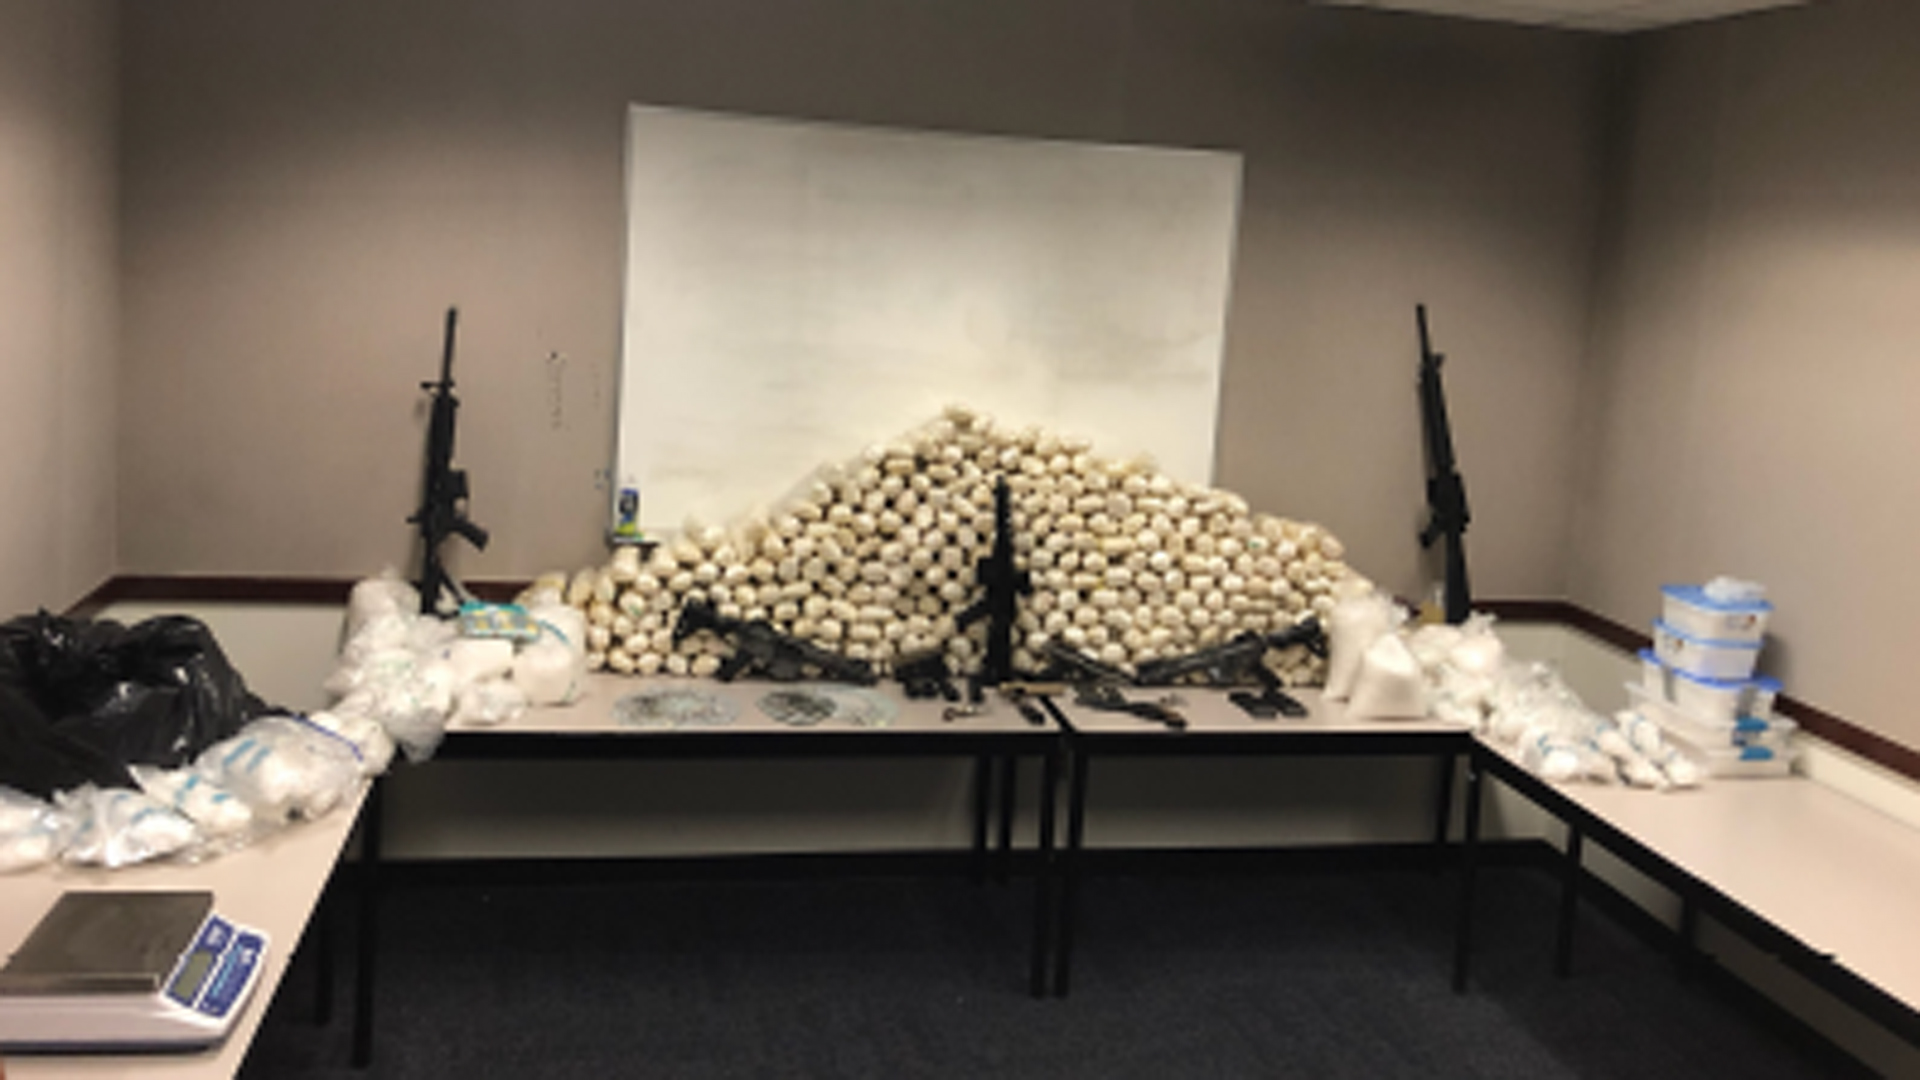 Alhambra police released this photo of drugs and weapons that were seized during the investigation.